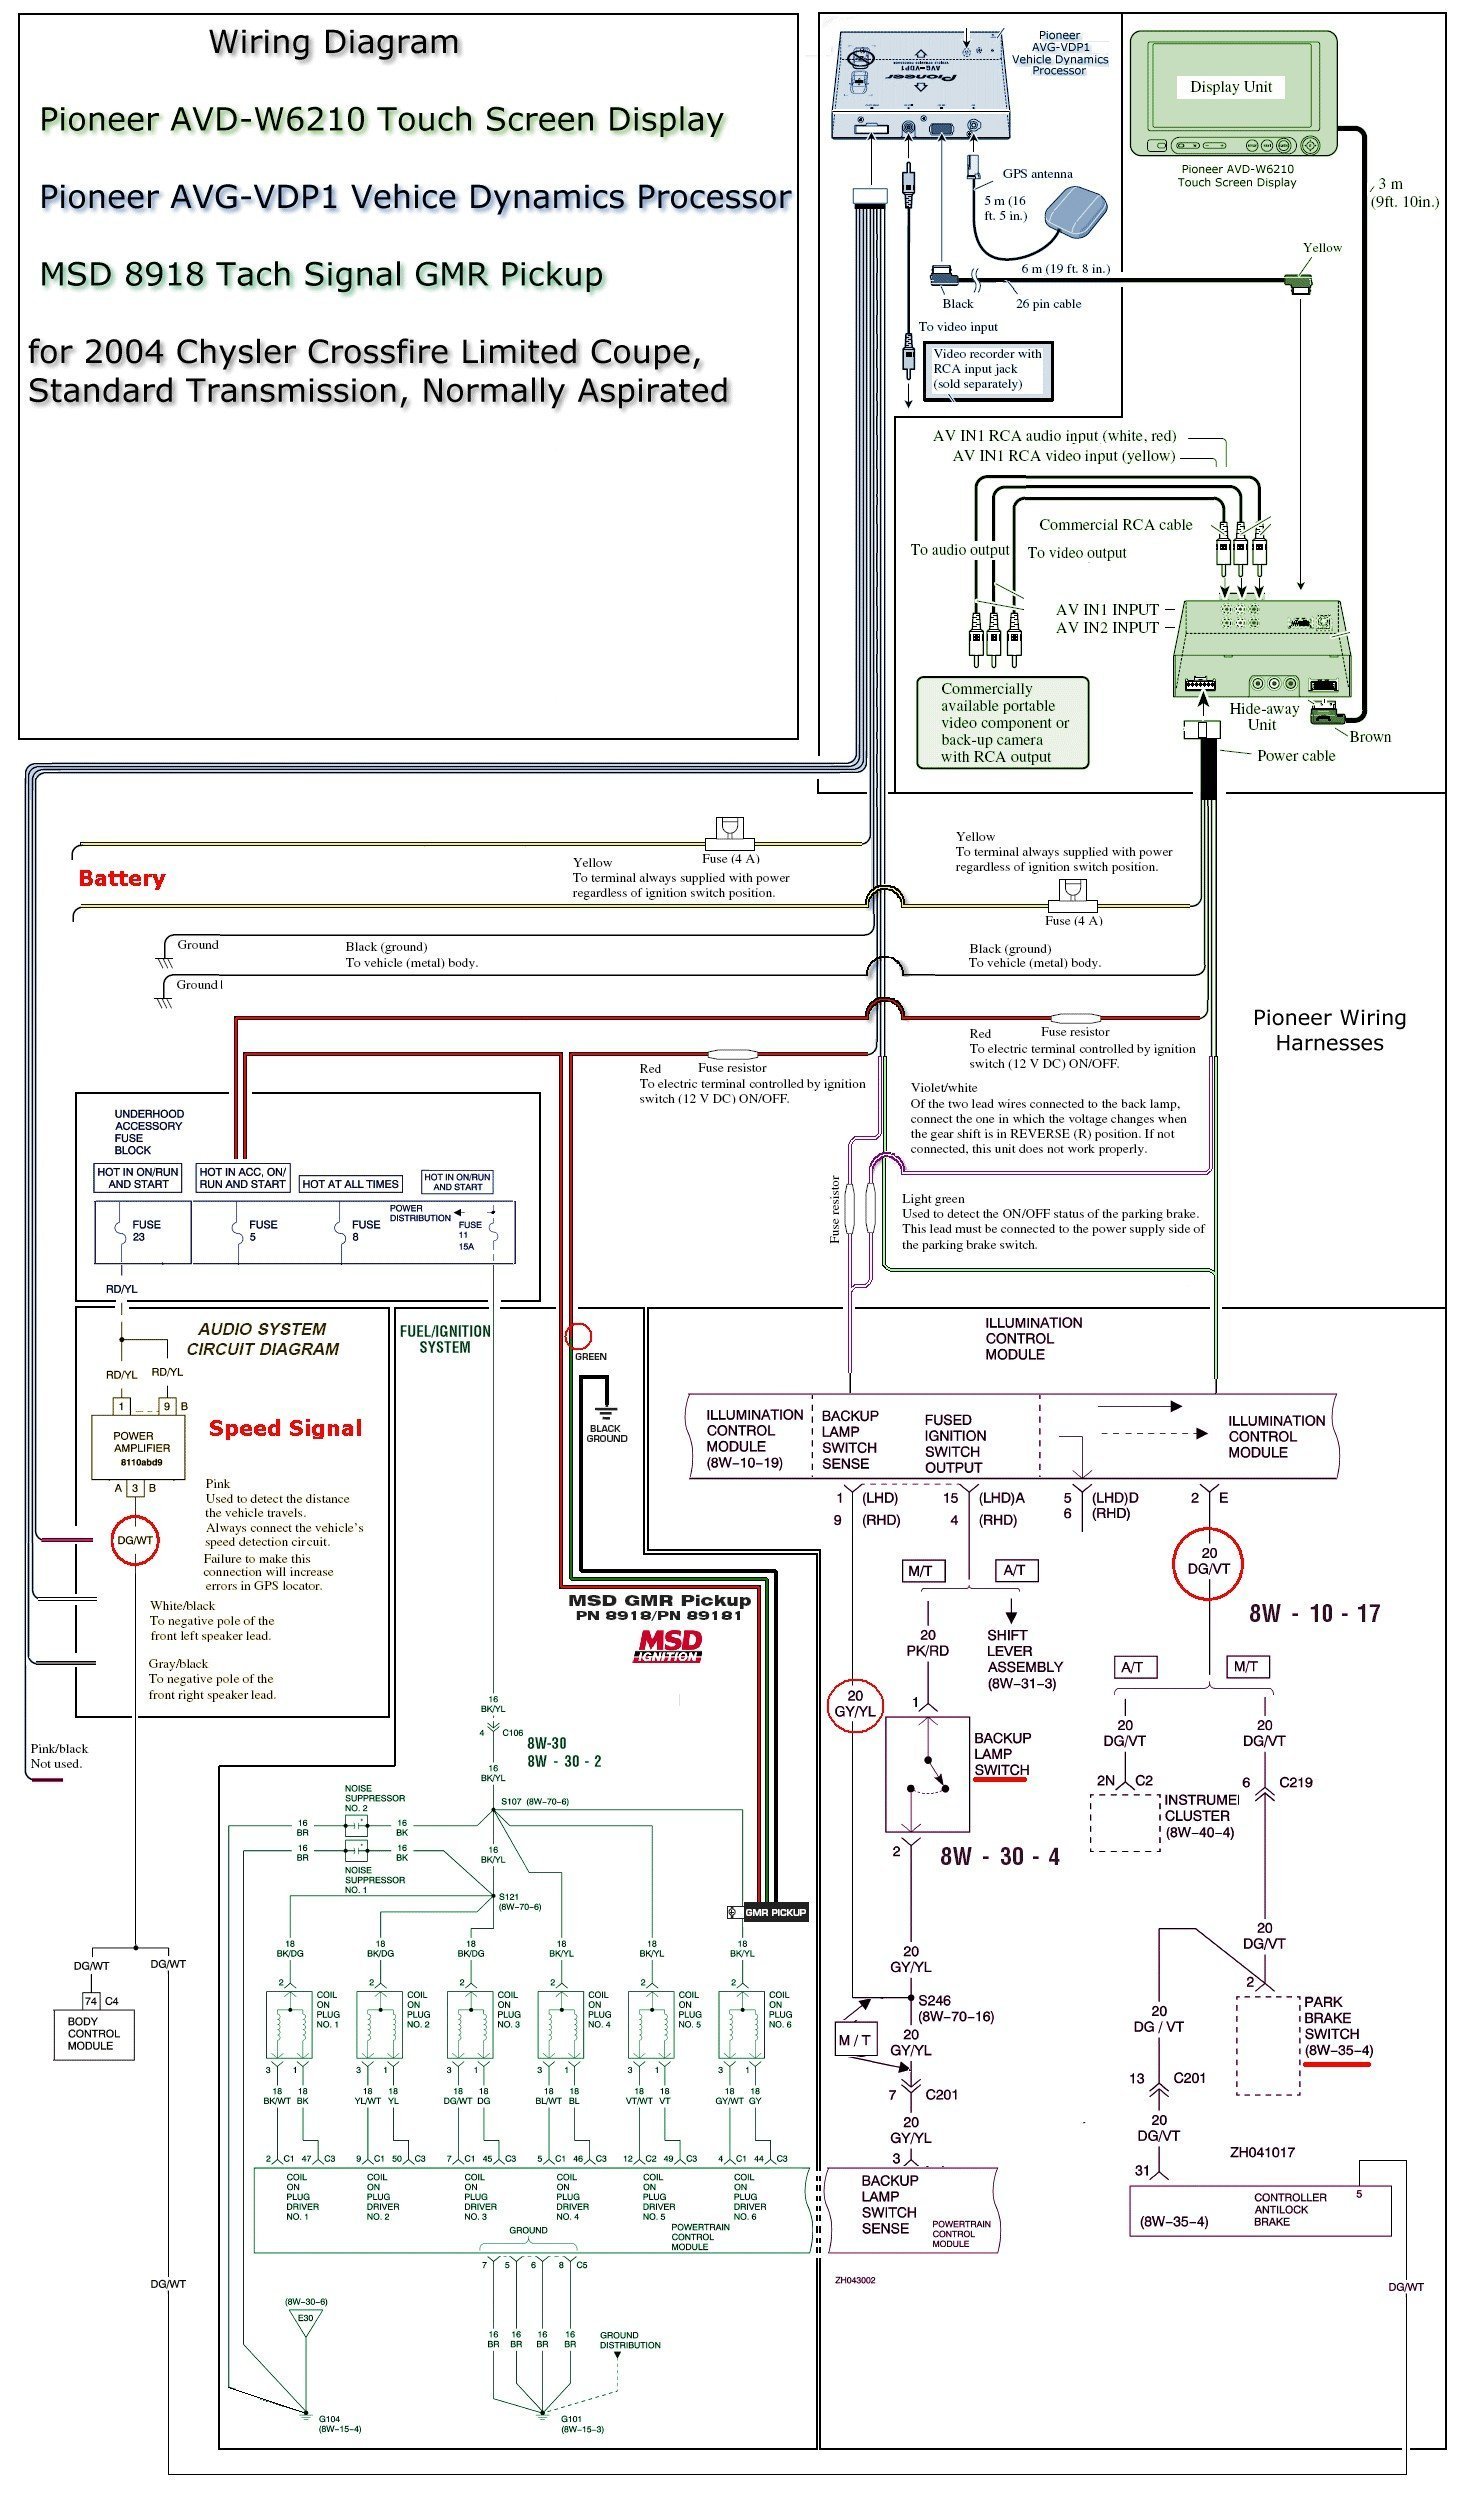 Pioneer Avh X2800Bs Wiring Diagram For Ranger | Wiring Library - Pioneer Avh-X2800Bs Wiring Harness Diagram